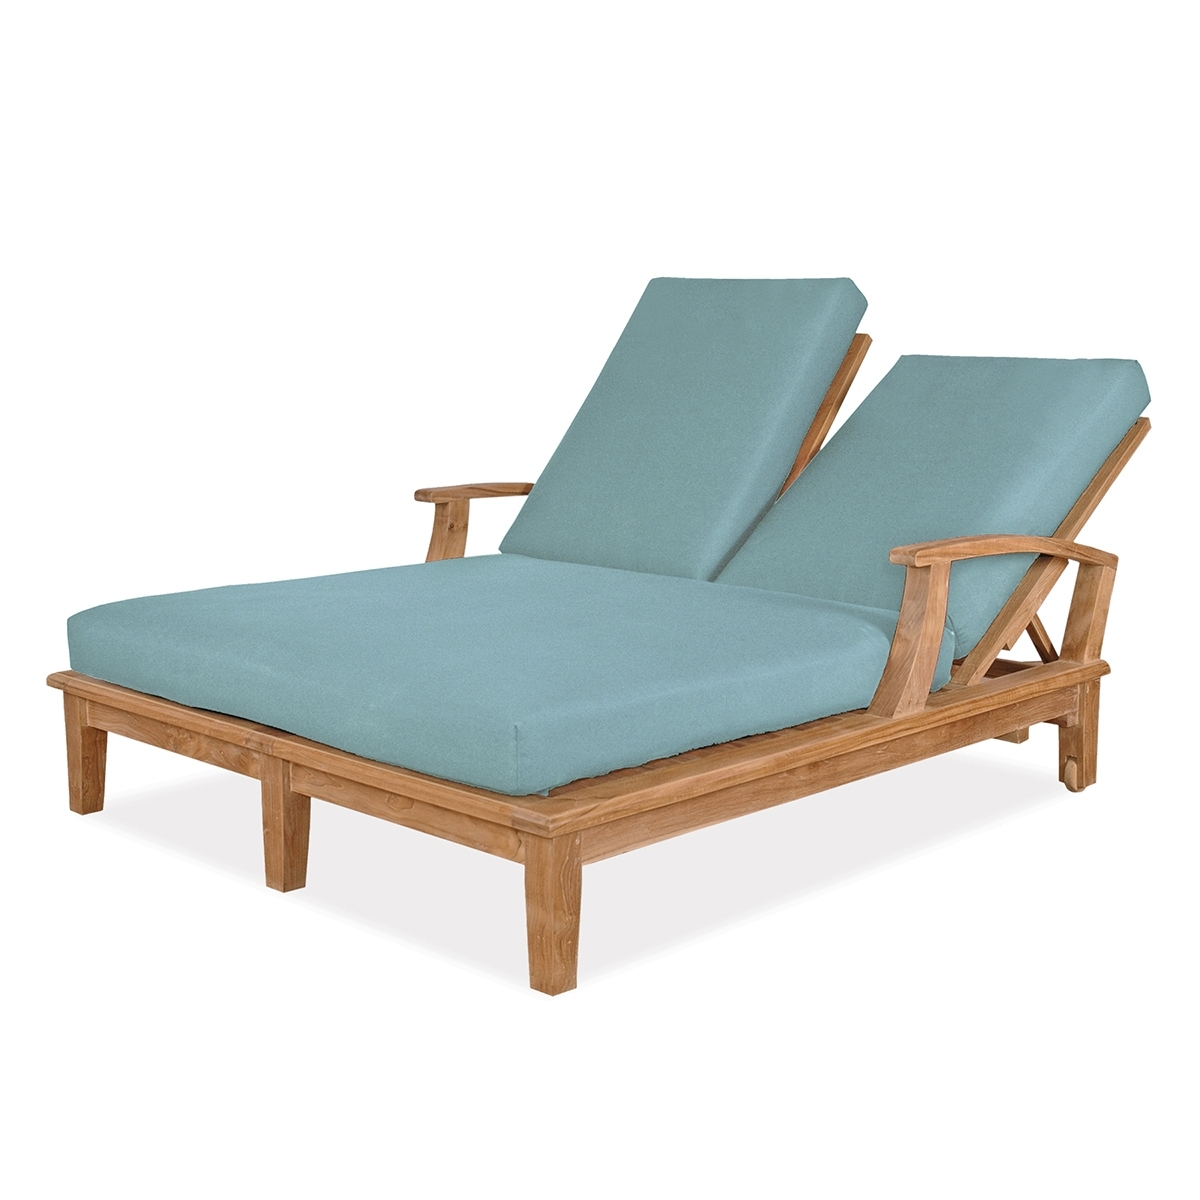 Veranda Collection within Trendy Double Outdoor Chaise Lounges